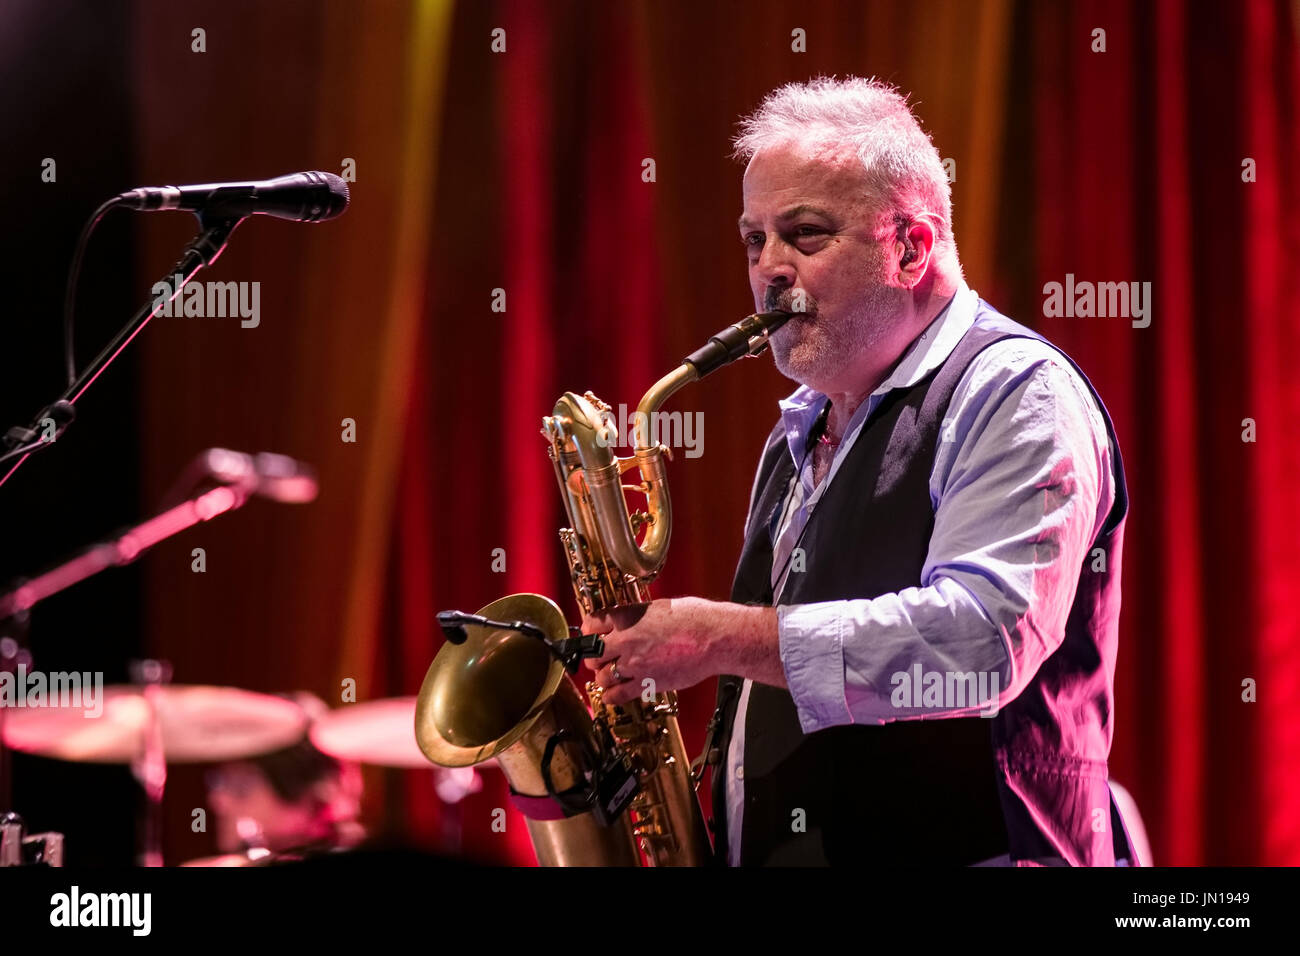 Liverpool, Merseyside, UK. 28th July, 2017. Brian Wilson's band performing The Beach Boy's classic album Pet Sounds Live at Liverpool Exhibition Centre Credit: Andy Von Pip/ZUMA Wire/Alamy Live News - Stock Image